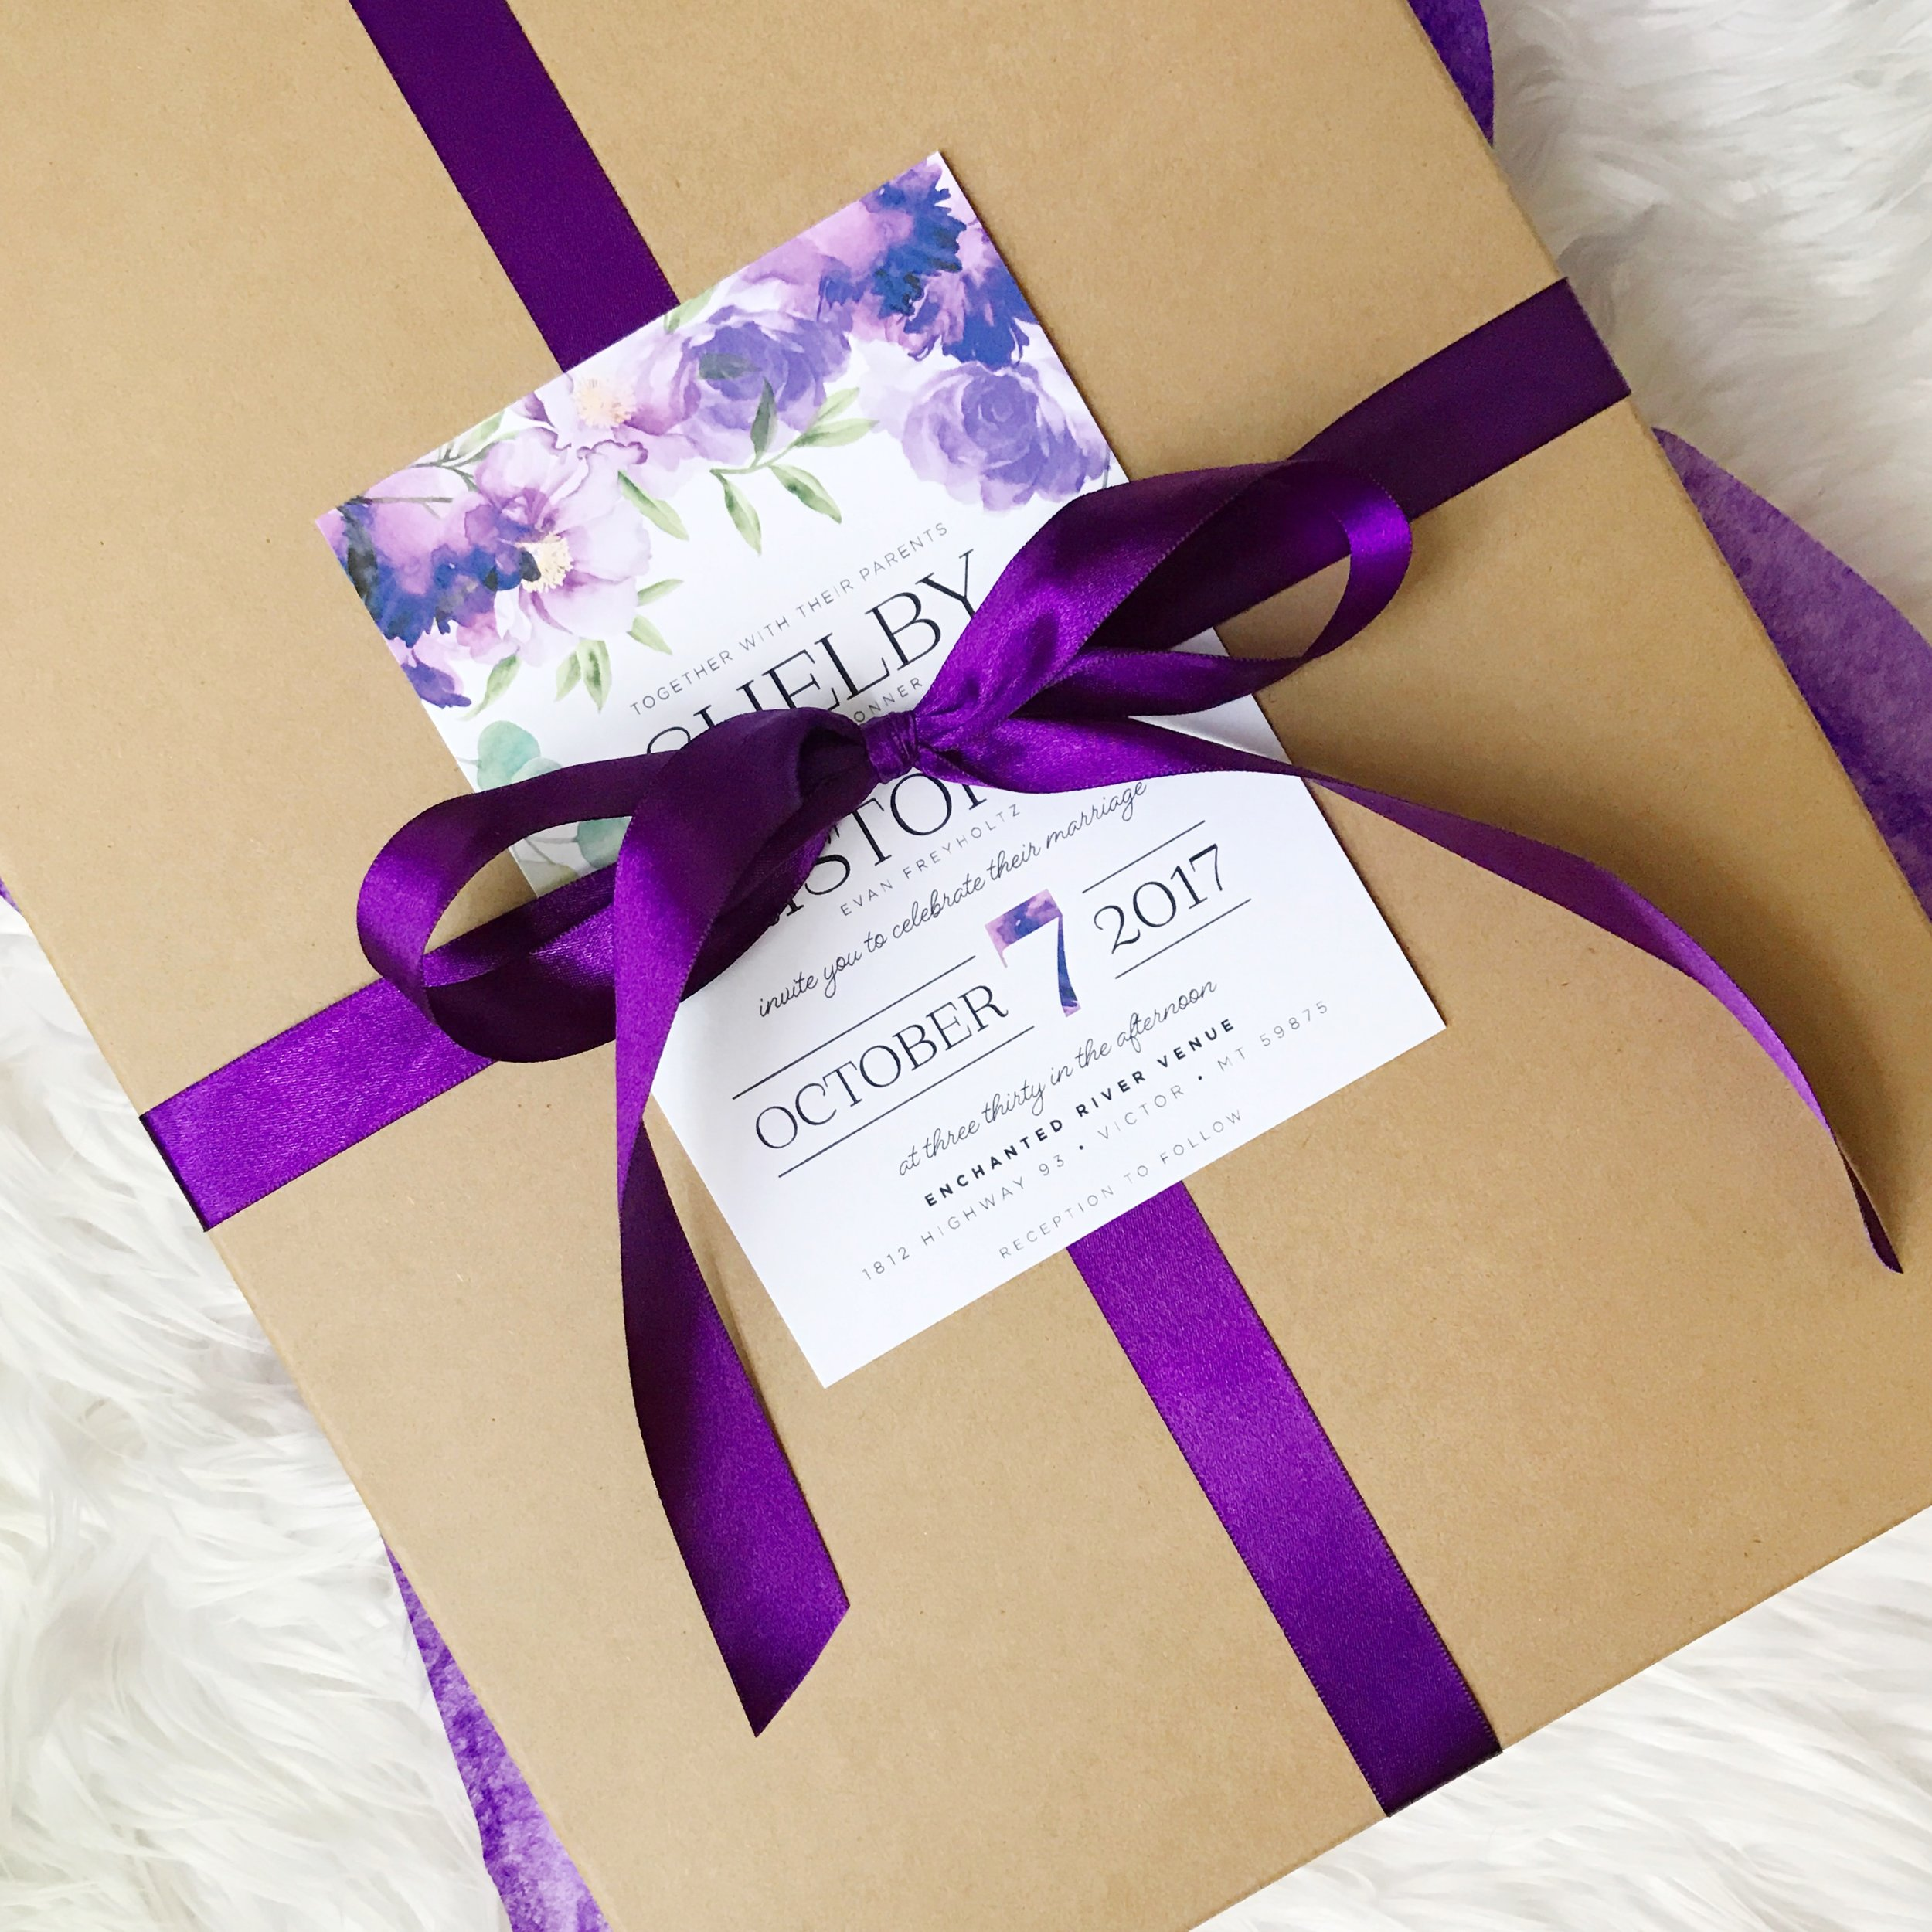 Ultra Violet Watercolor Floral wedding suite, packaged and ready to deliver to the bride